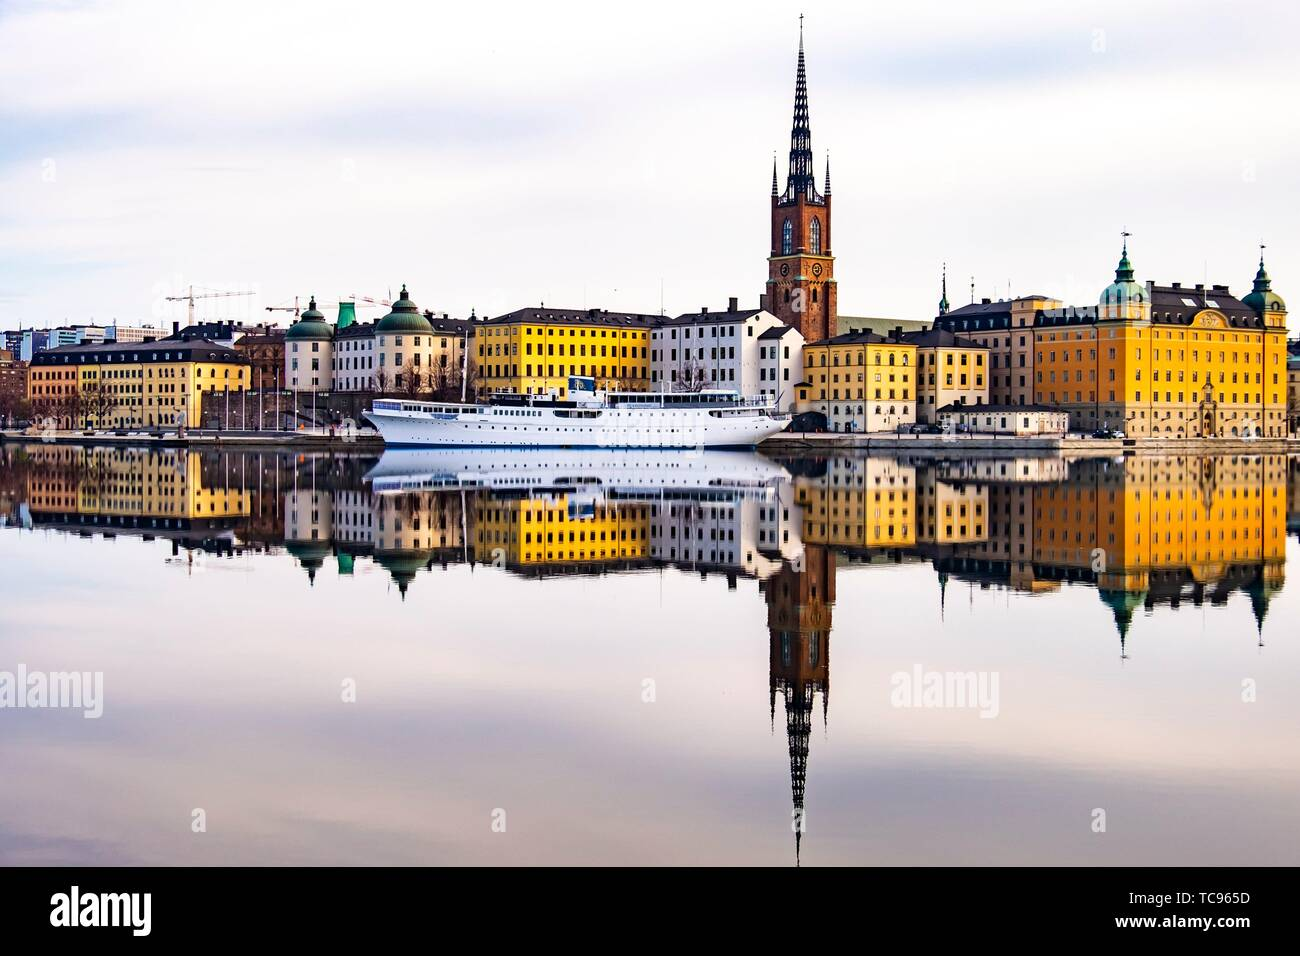 Scenic panorama of the Old Town (Gamla Stan) in Stockholm, Sweden. Stock Photo